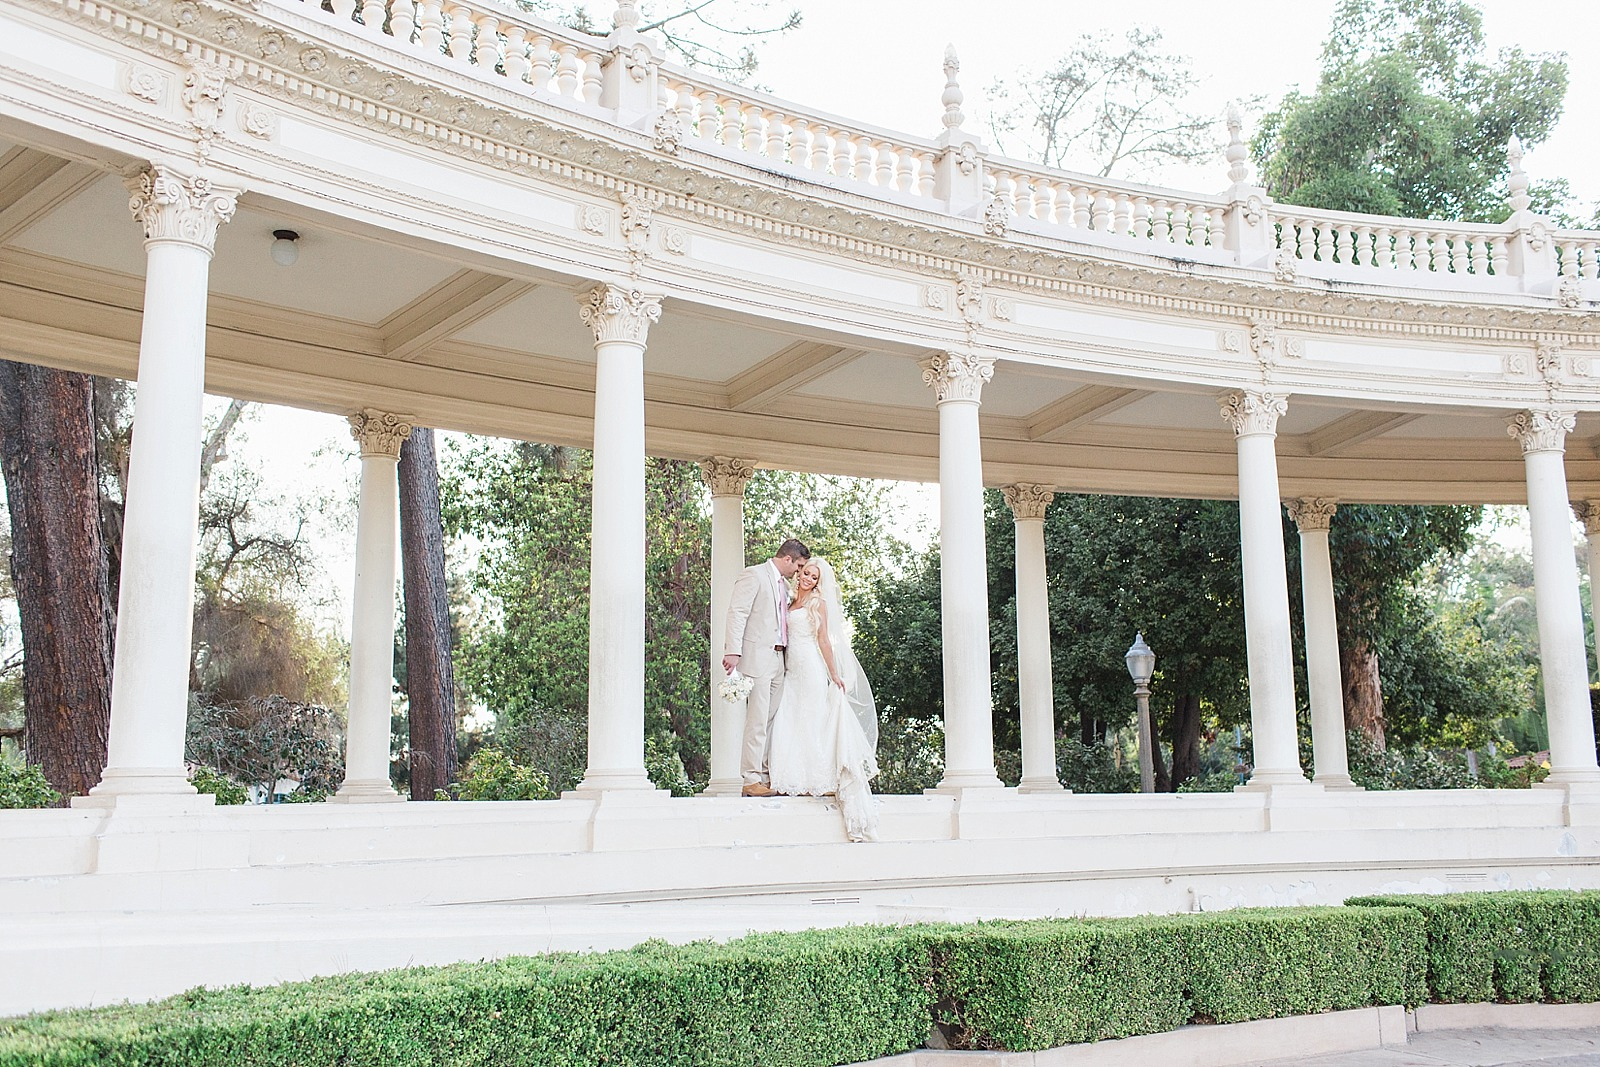 diana-elizabeth-photography-balboa-park-wedding-portraits-photography_0200